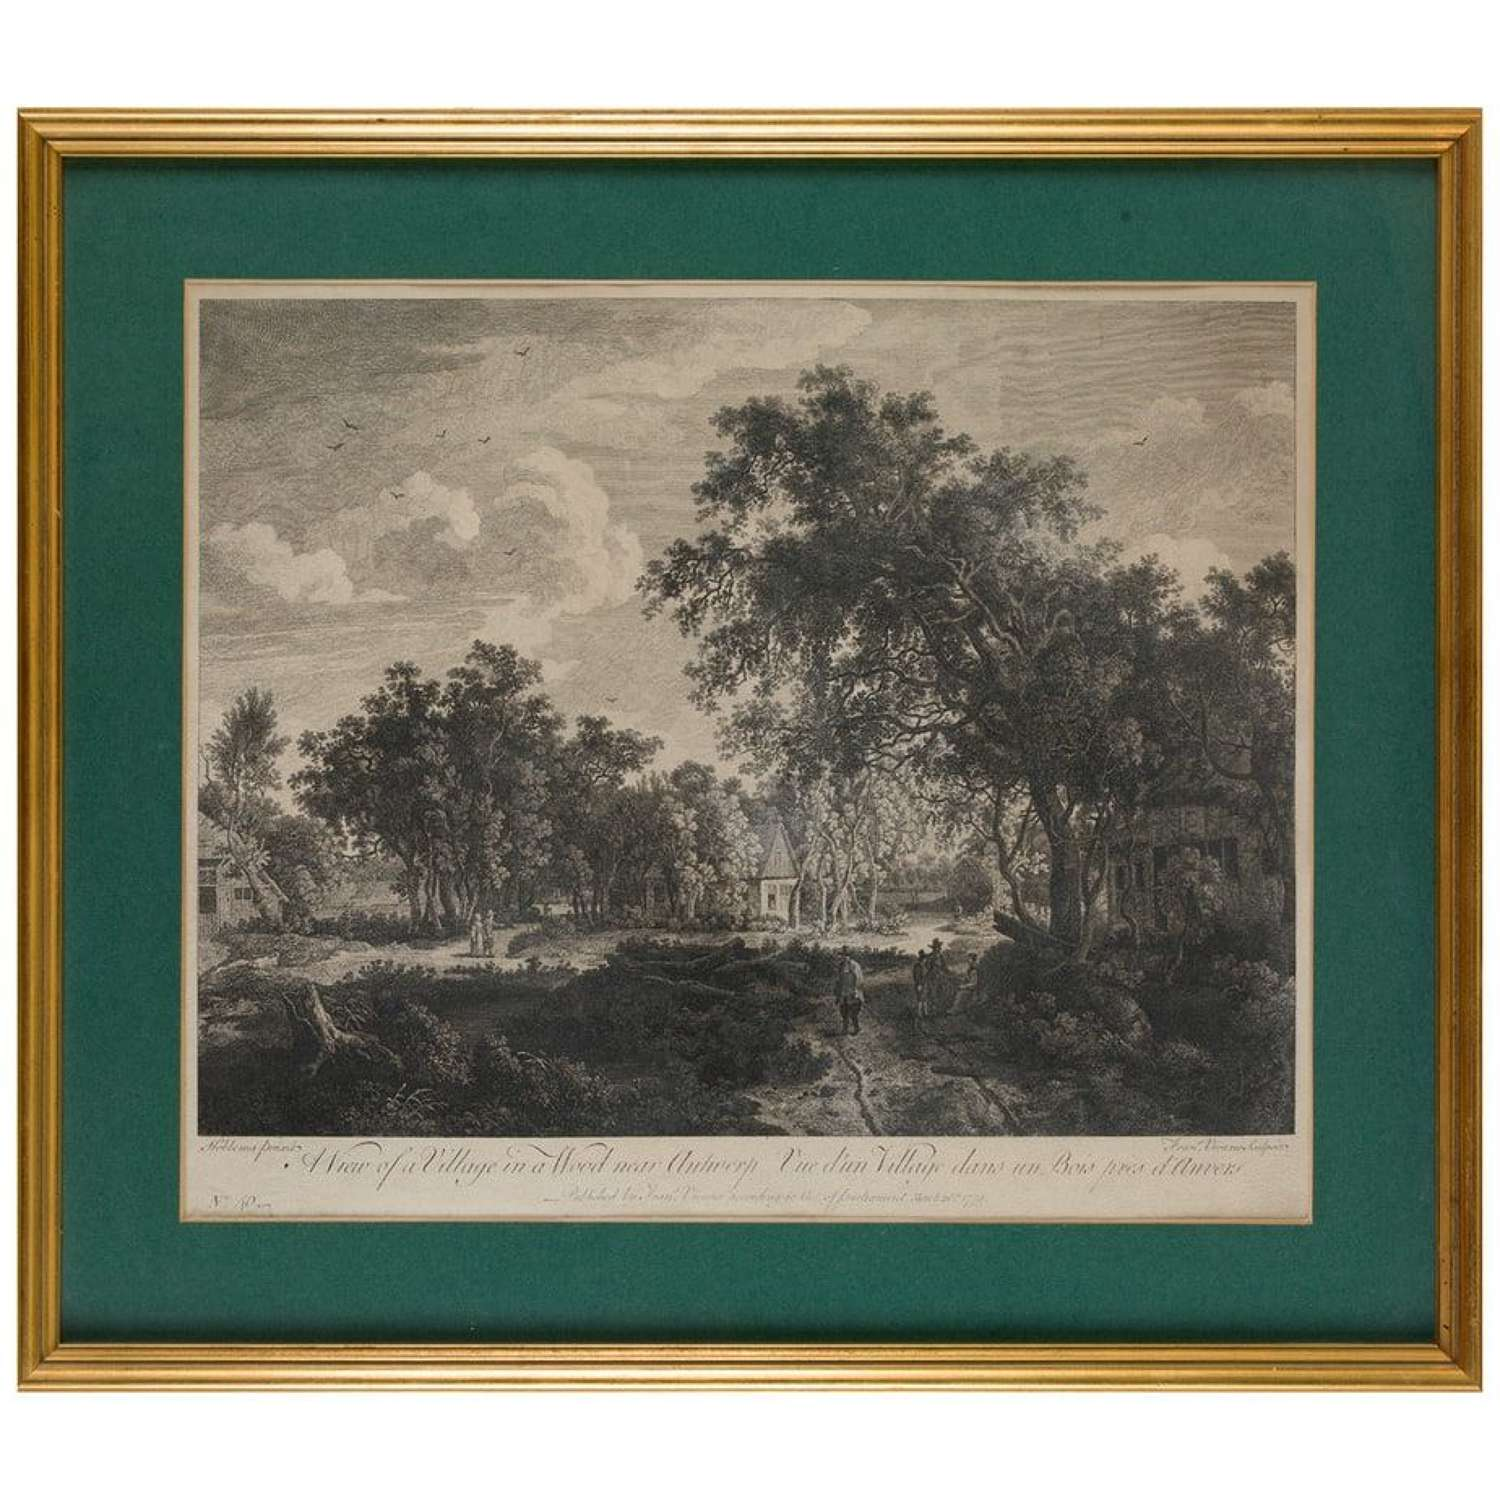 3 Engravings by Thomas Gainsbrough & George Smith